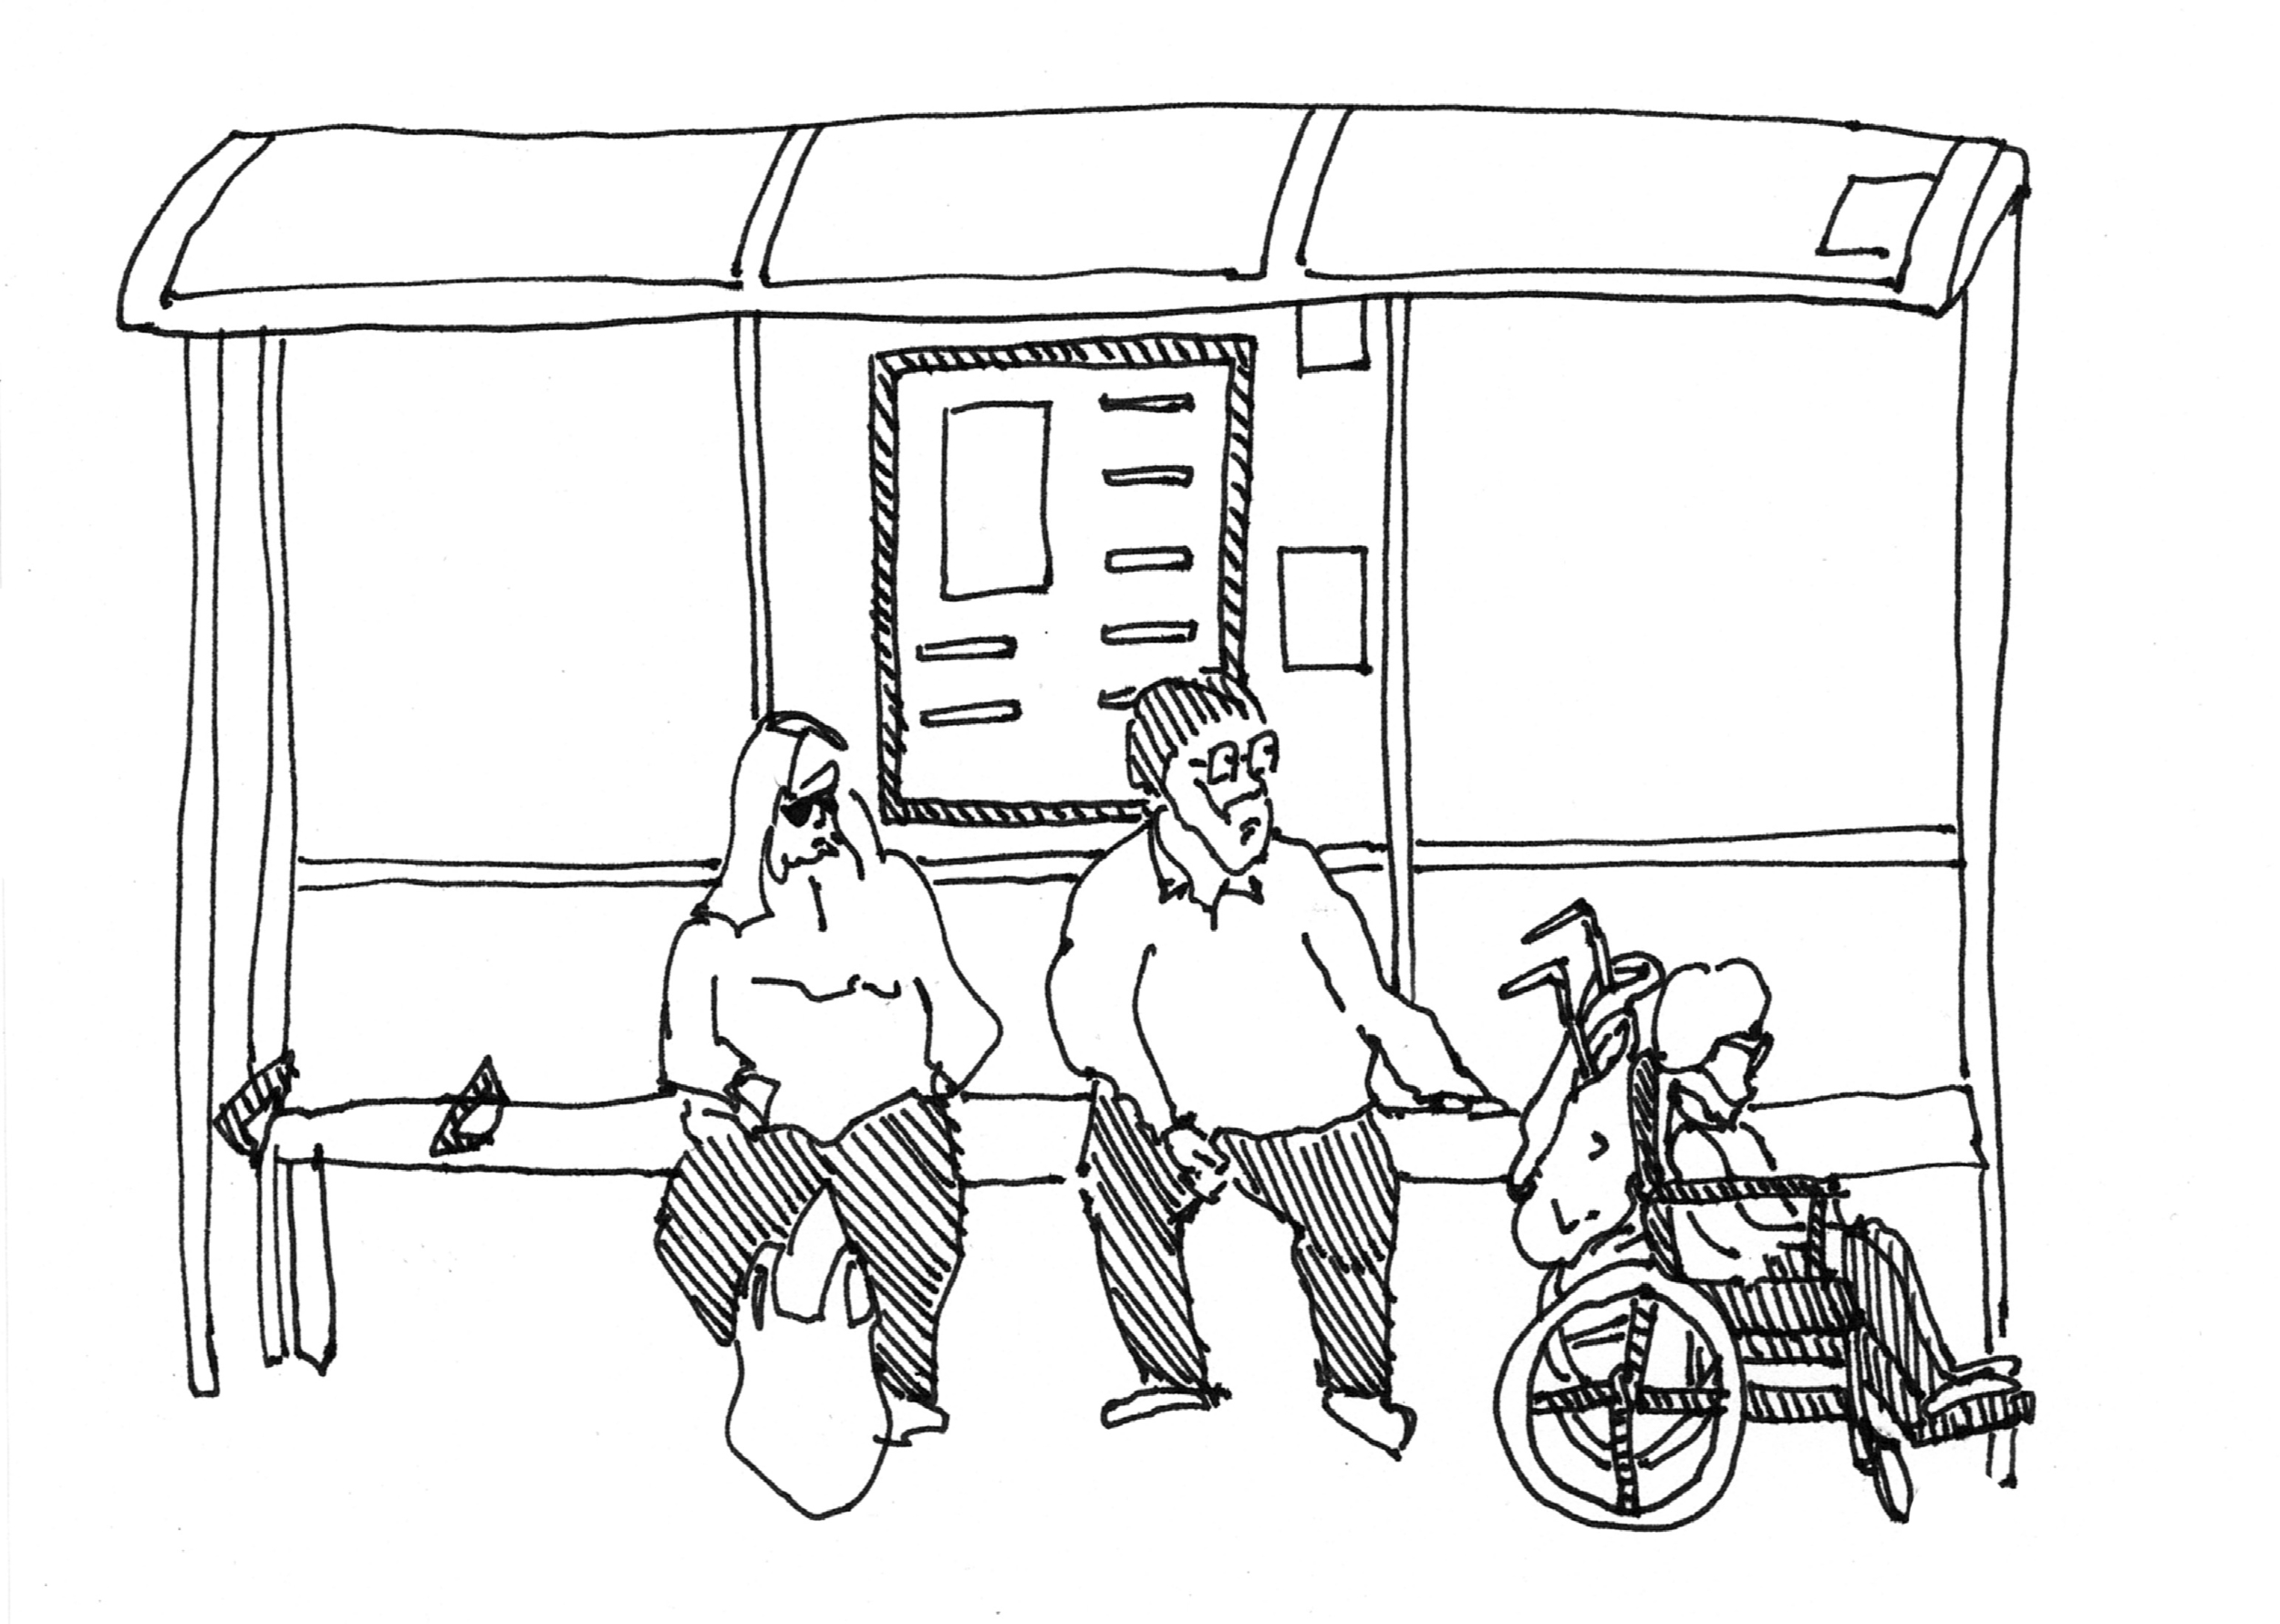 Observational drawings of life in Longbridge by Sarah Taylor Silverwood